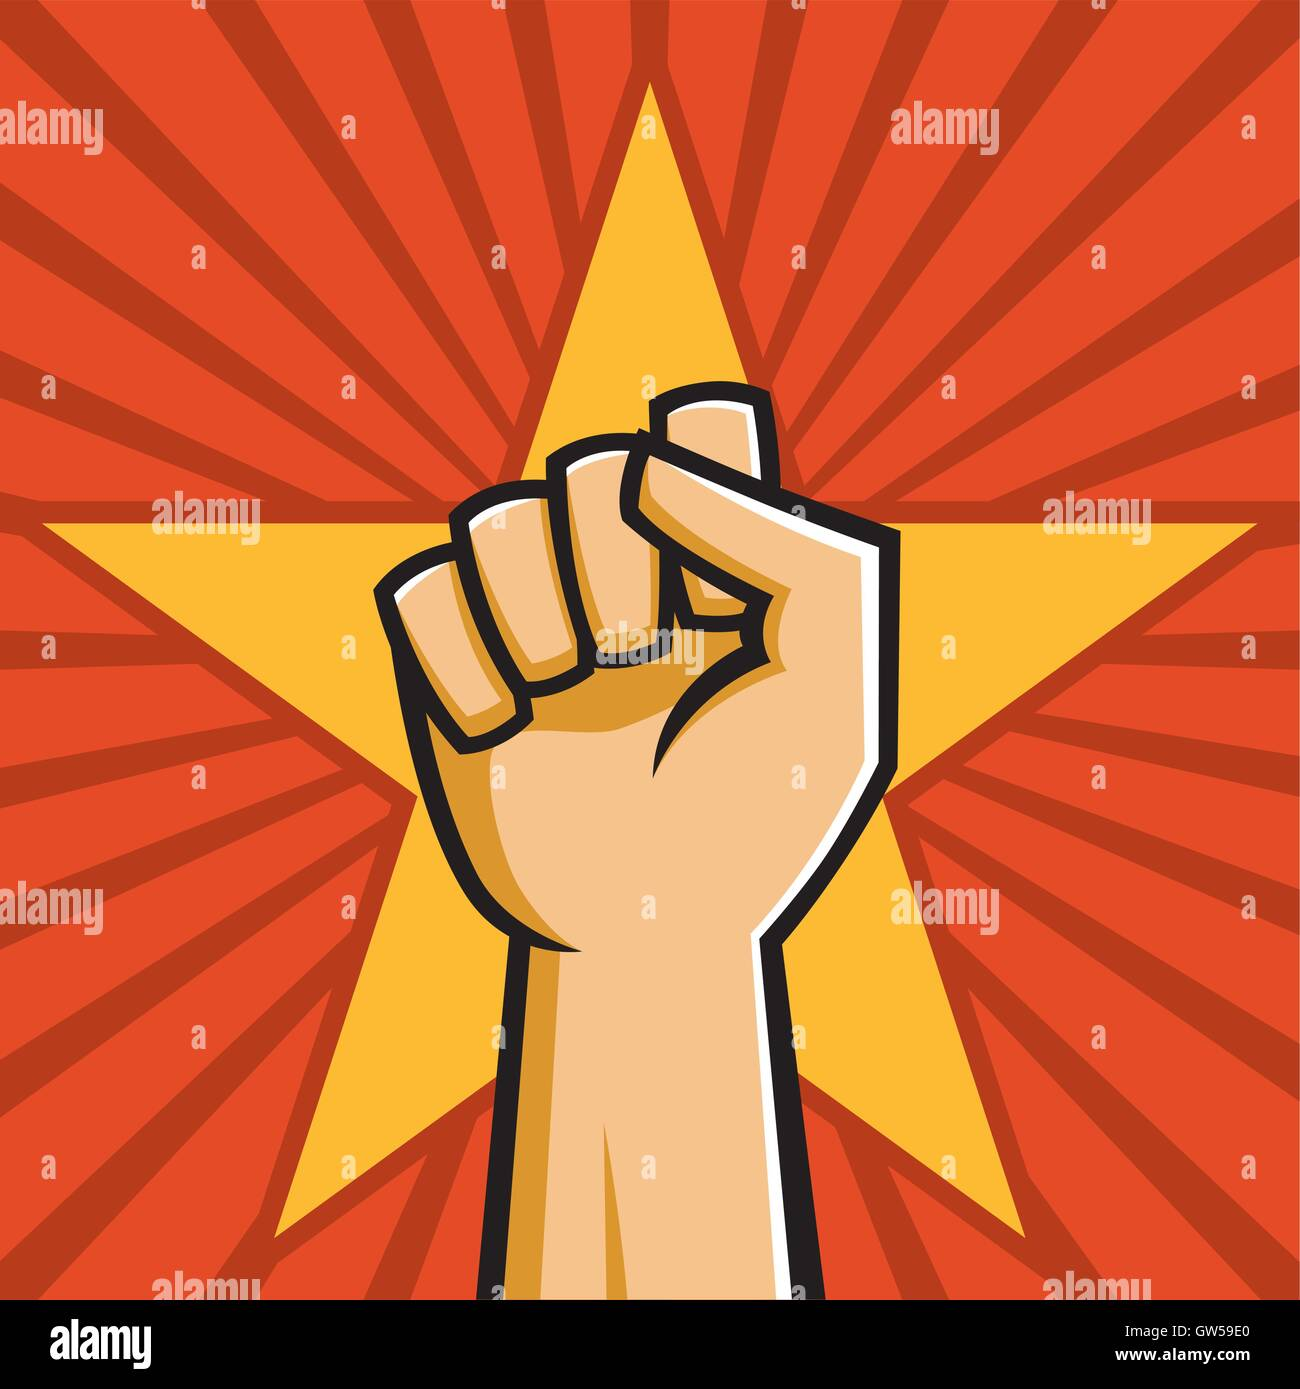 Raised fist in front of star and radial background. Vector illustration in style of Russian Constructivist propaganda - Stock Vector